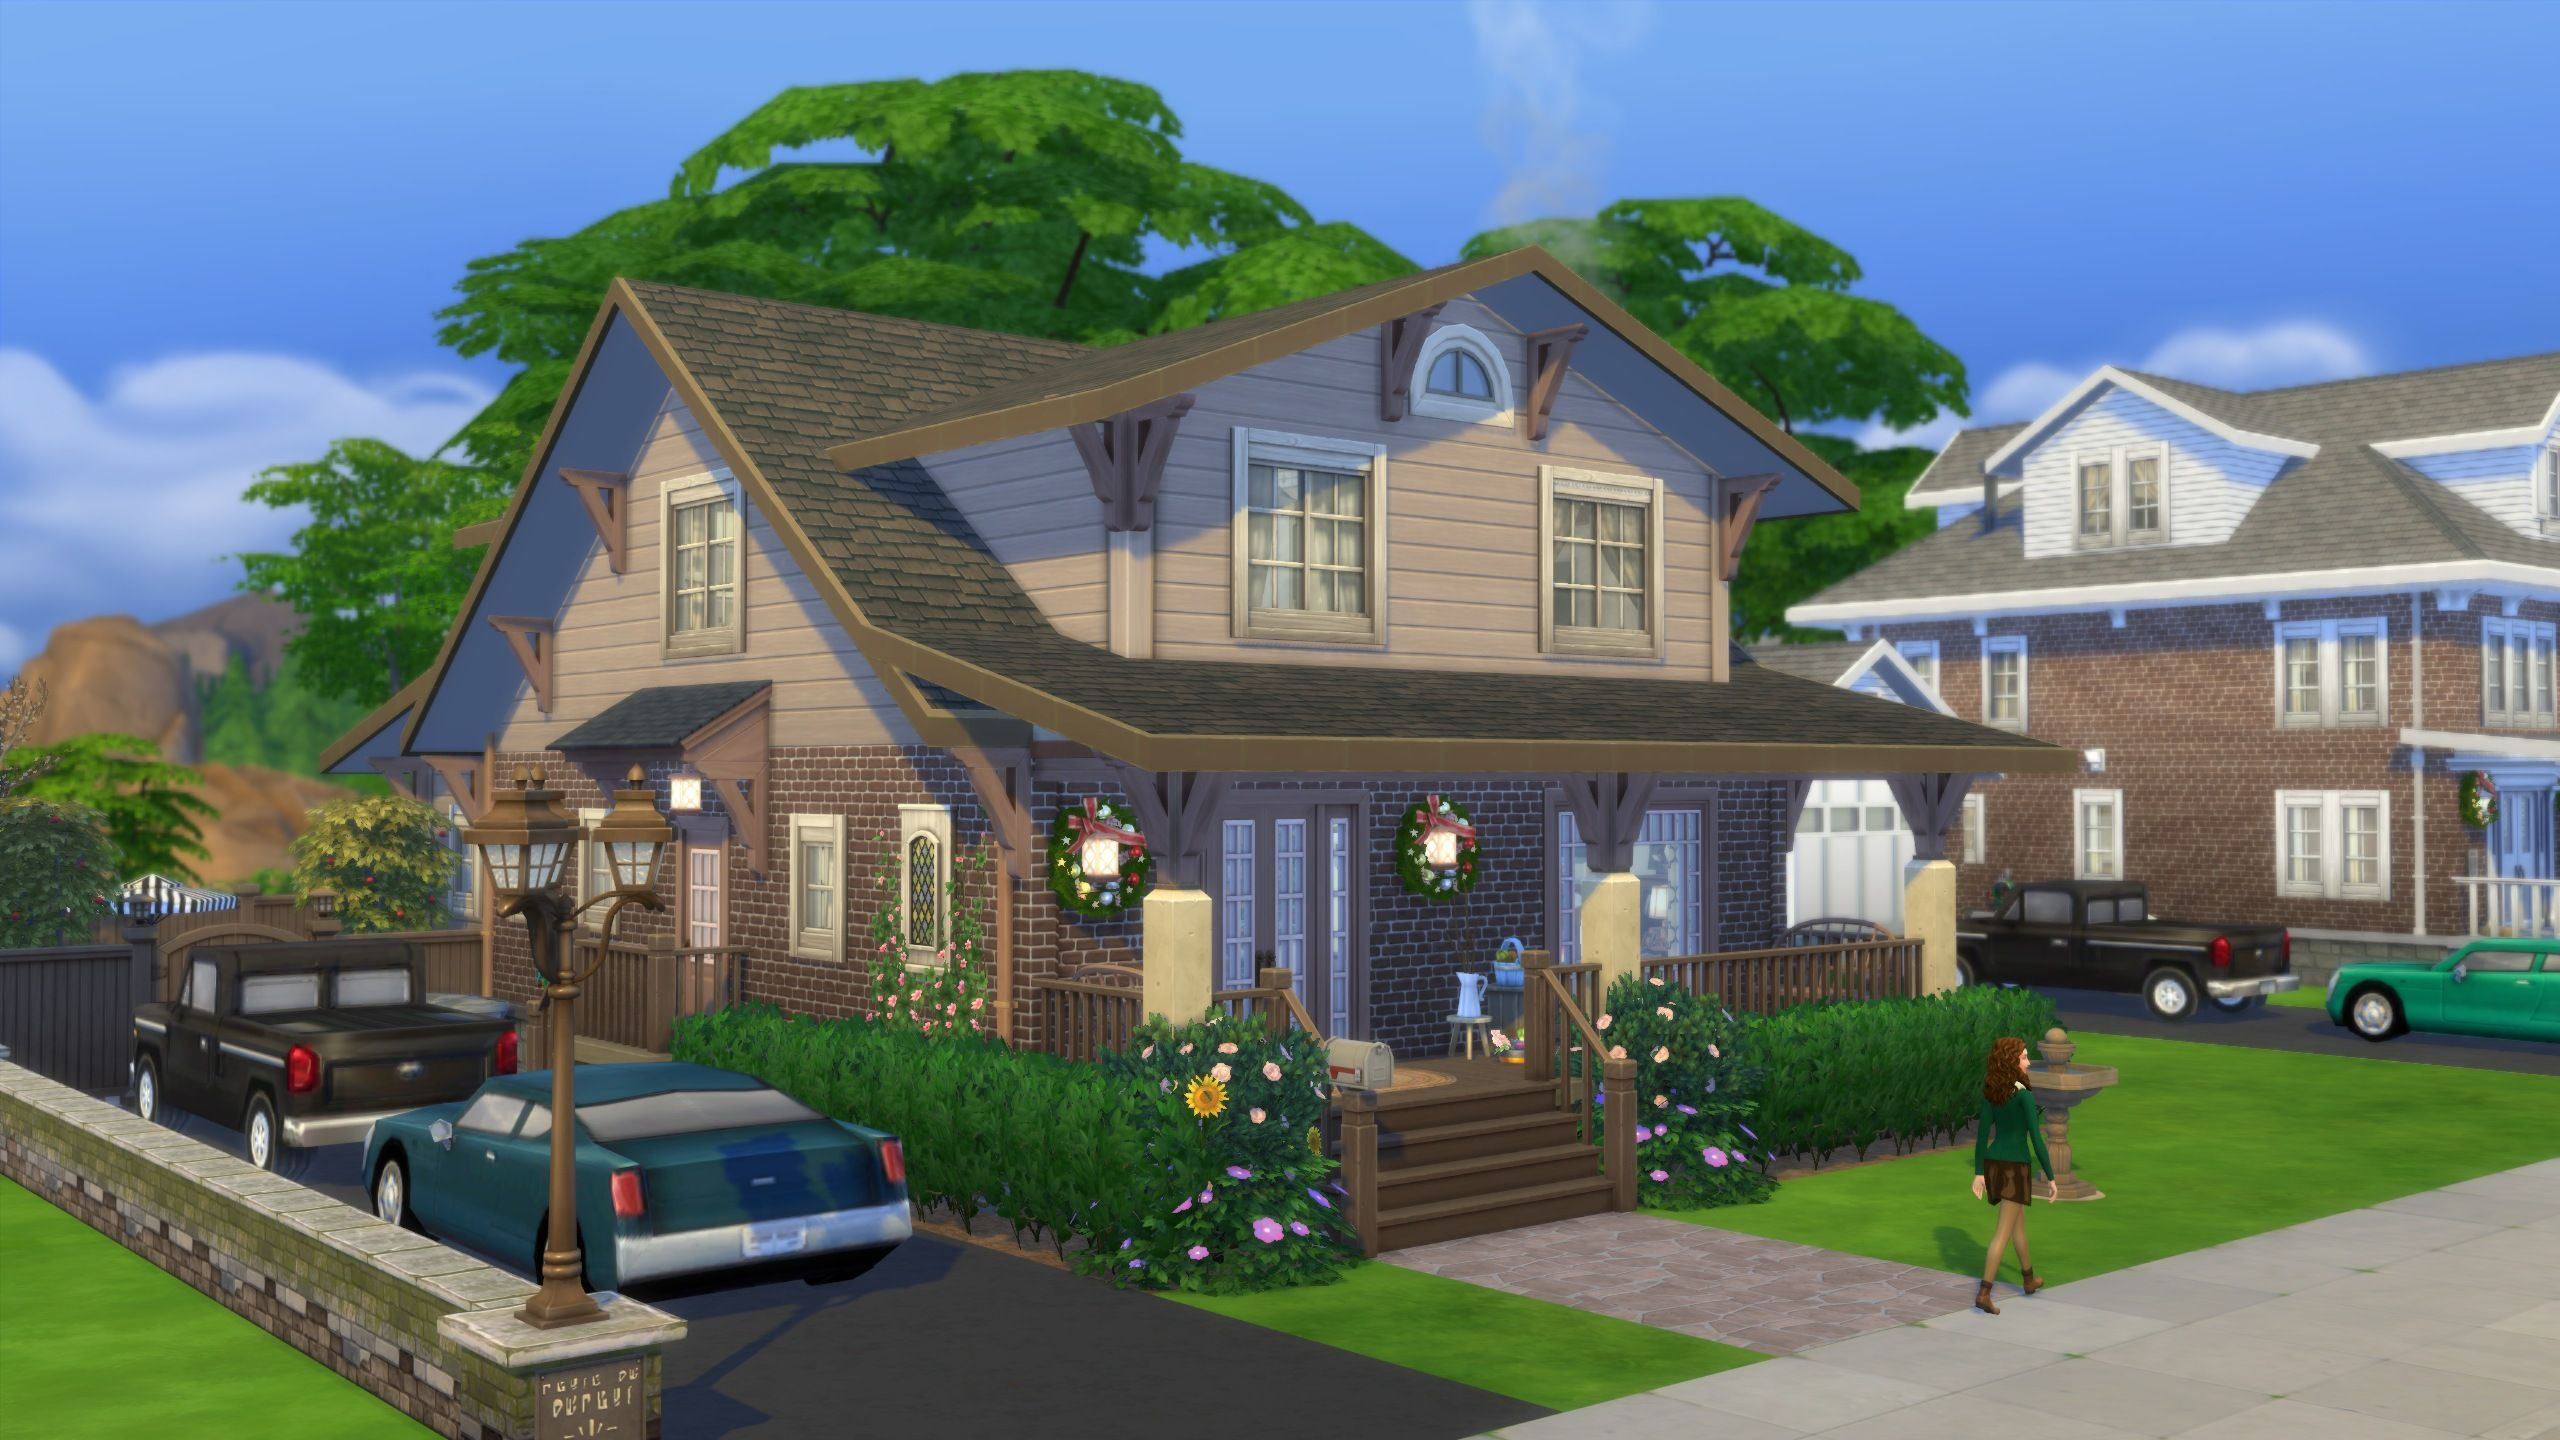 Mod The Sims The Grand Craftsman No Cc Sims Sims 4 Houses